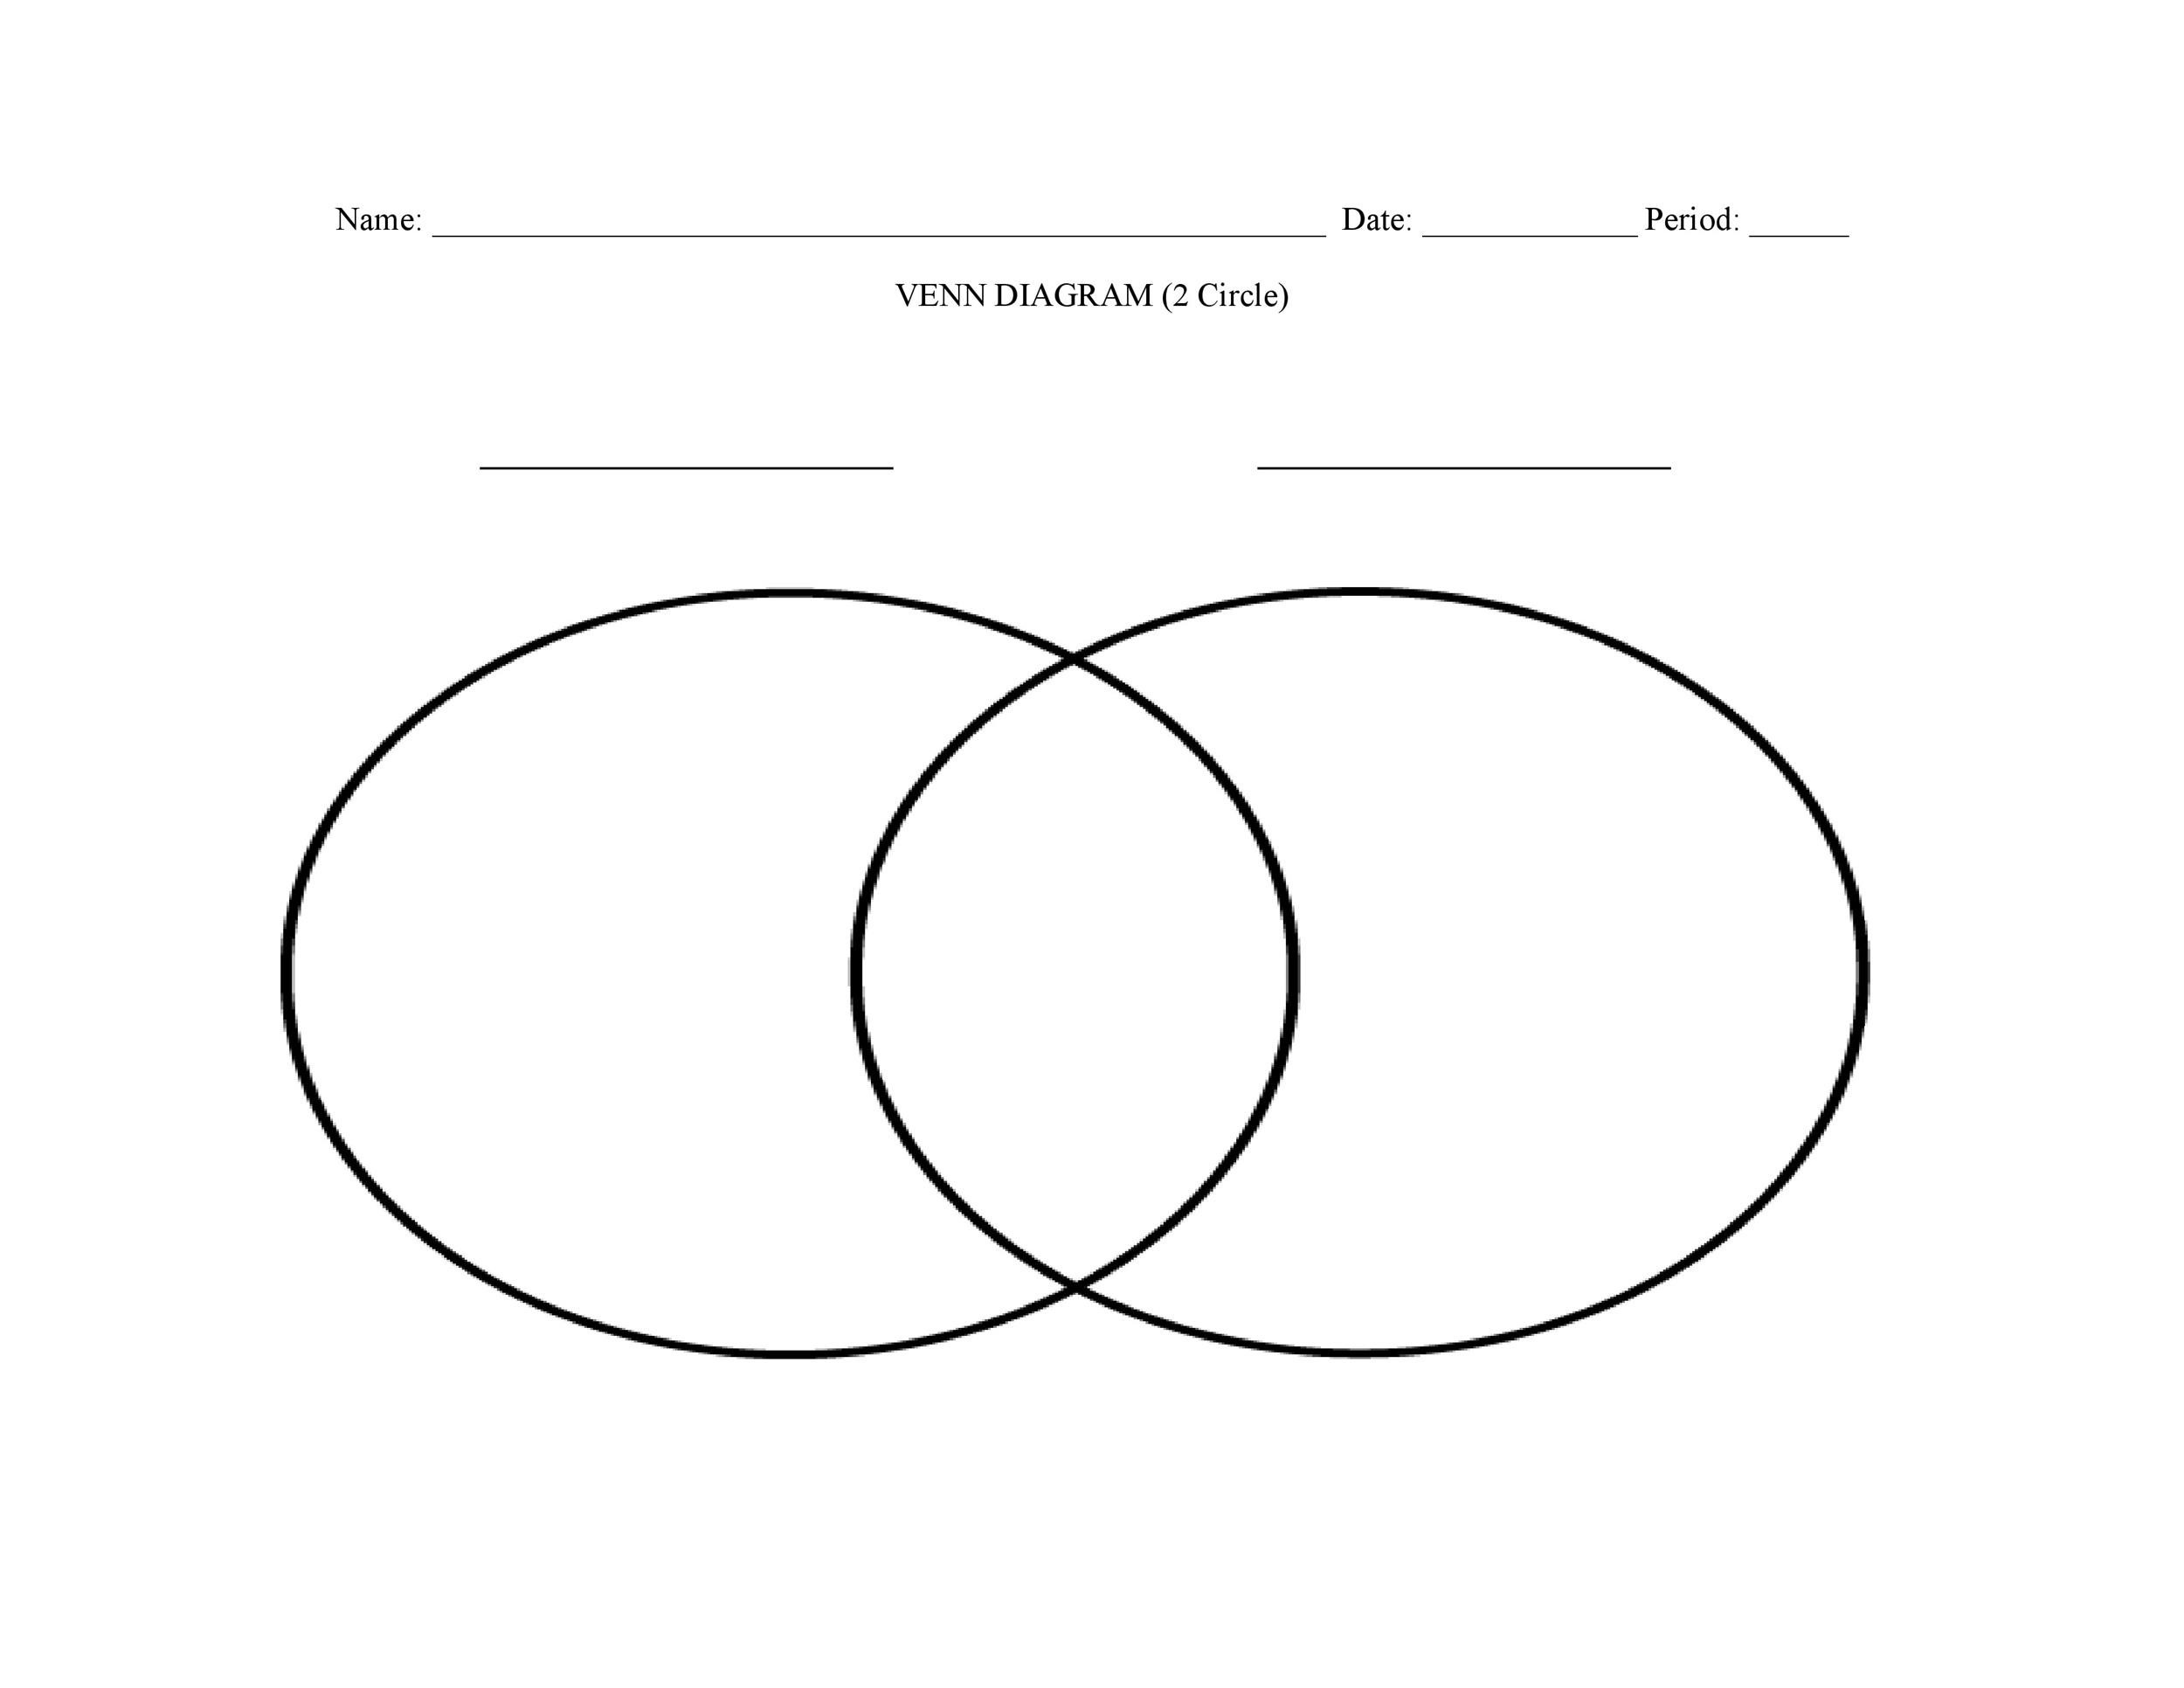 40 Free Venn Diagram Templates Word Pdf Template Lab